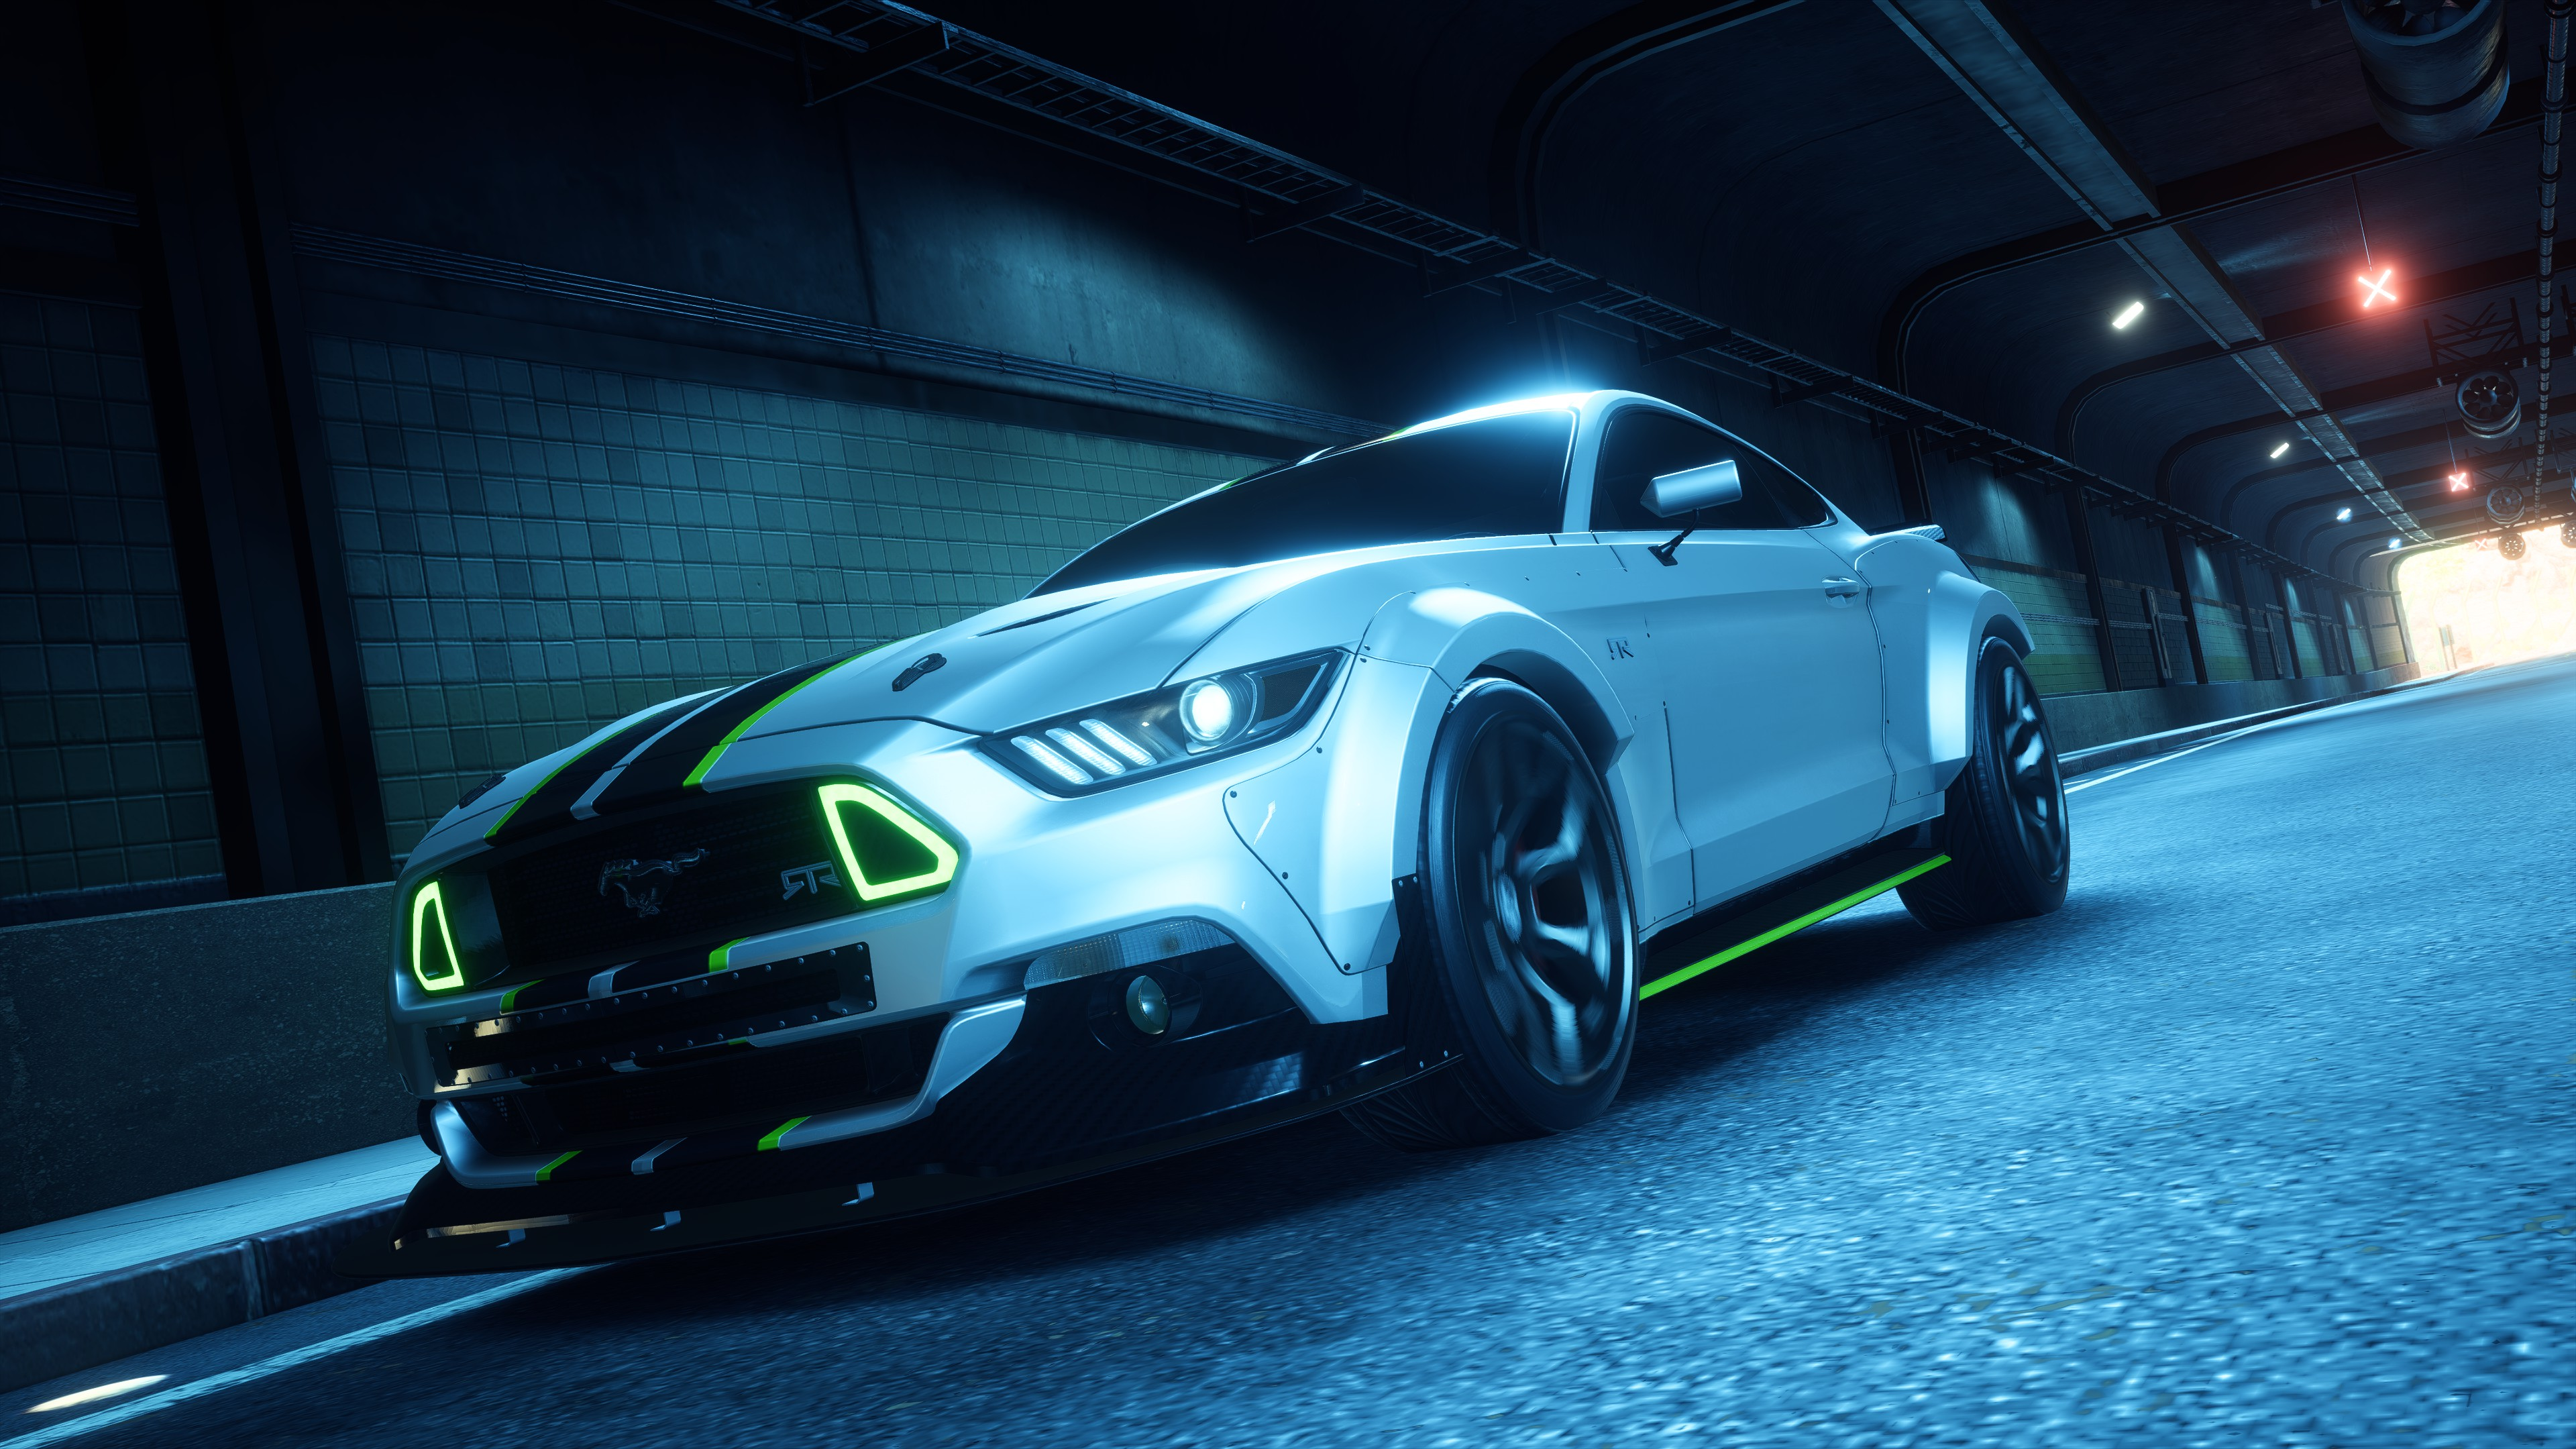 Steam Community Screenshot Need For Speed Payback Ford Mustang Gt Gen